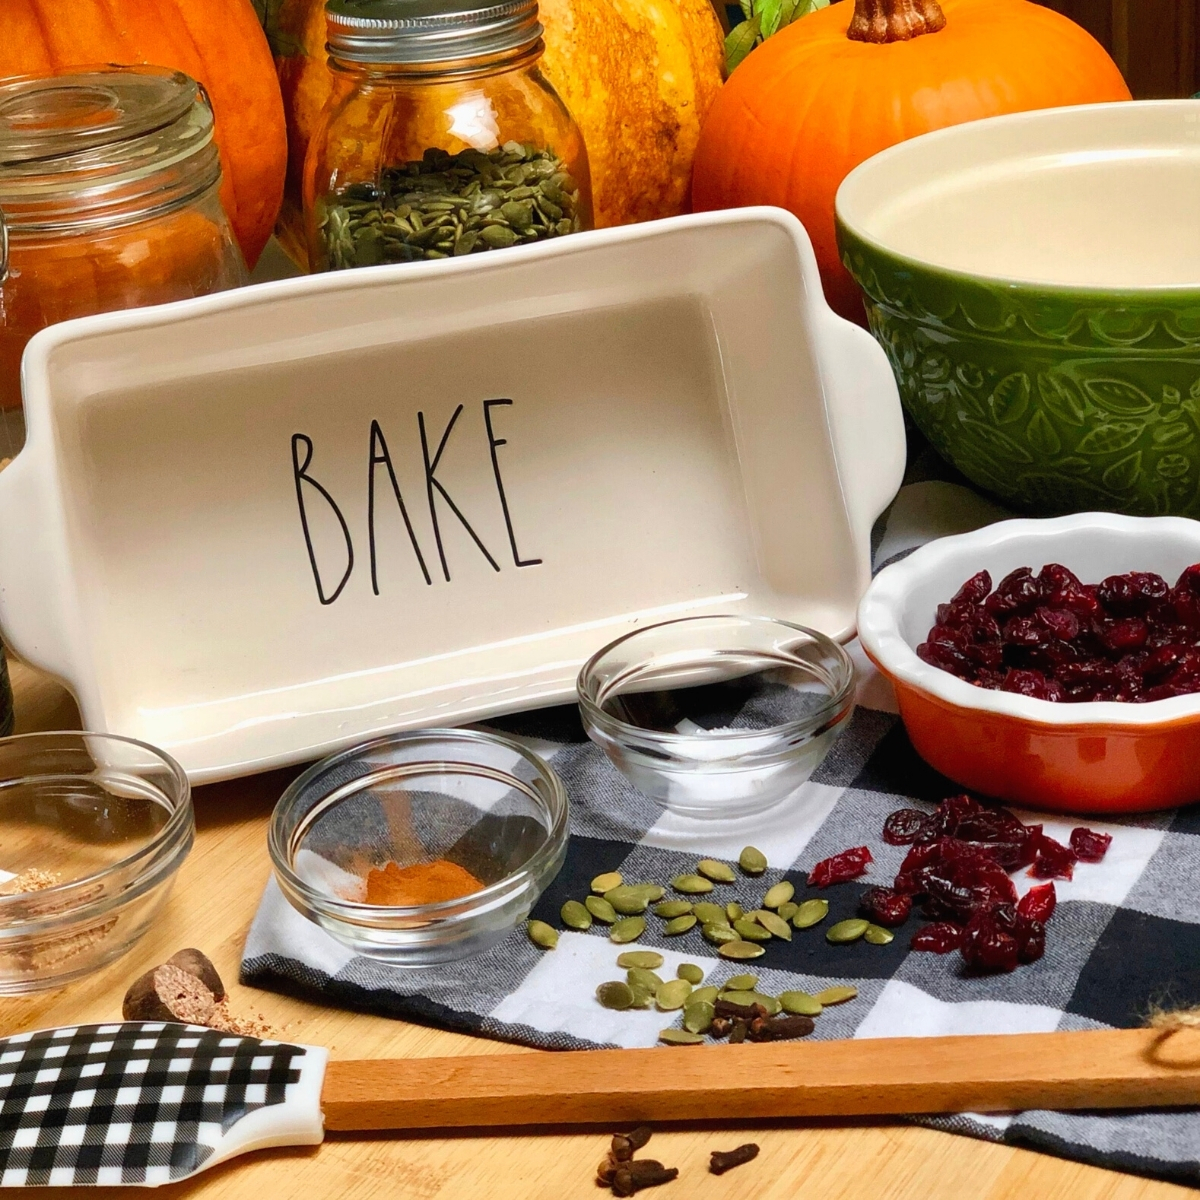 A fall-inspired display of bakeware, dried cranberries and spices.